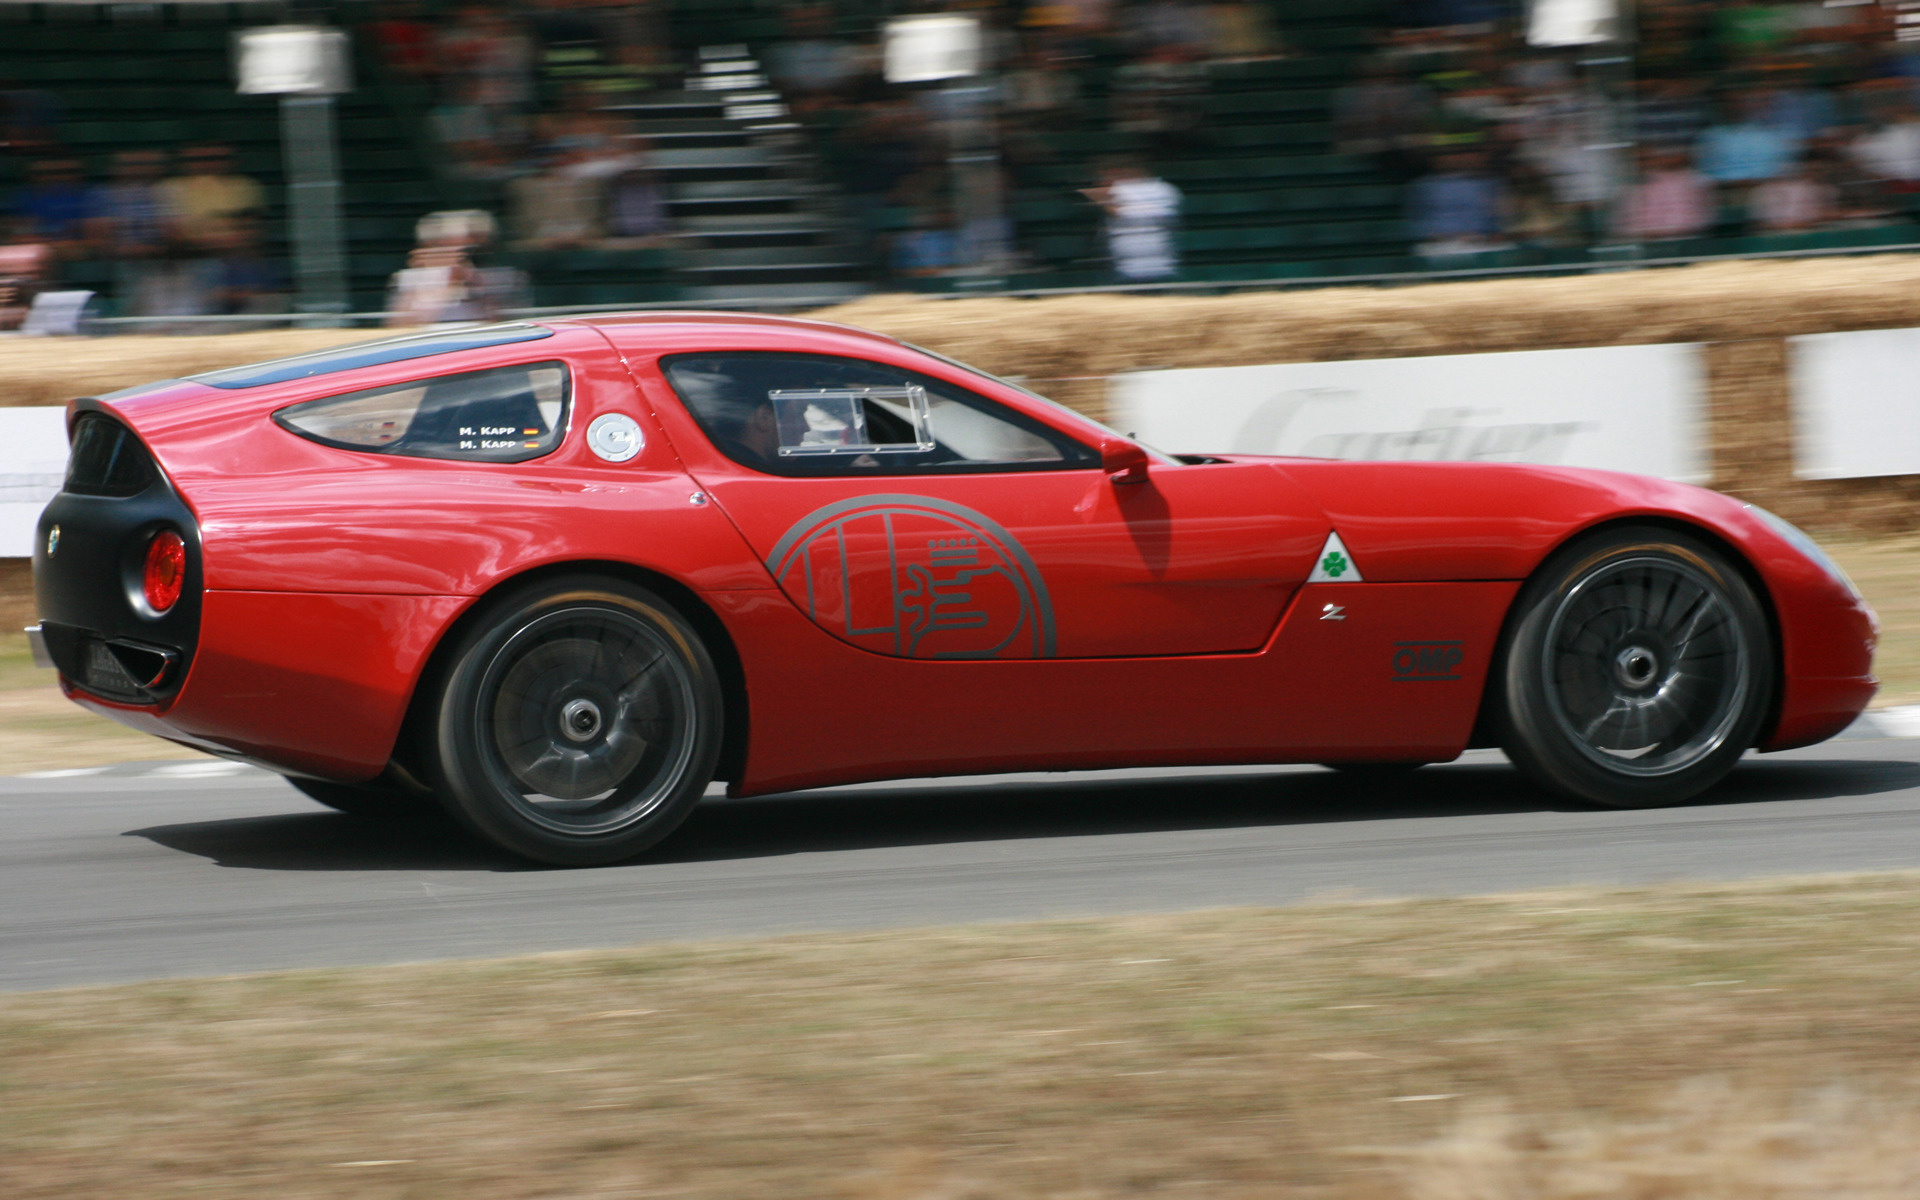 Alfa Romeo TZ Corsa Wallpapers And HD Images Car Pixel - Alfa romeo tz3 corsa